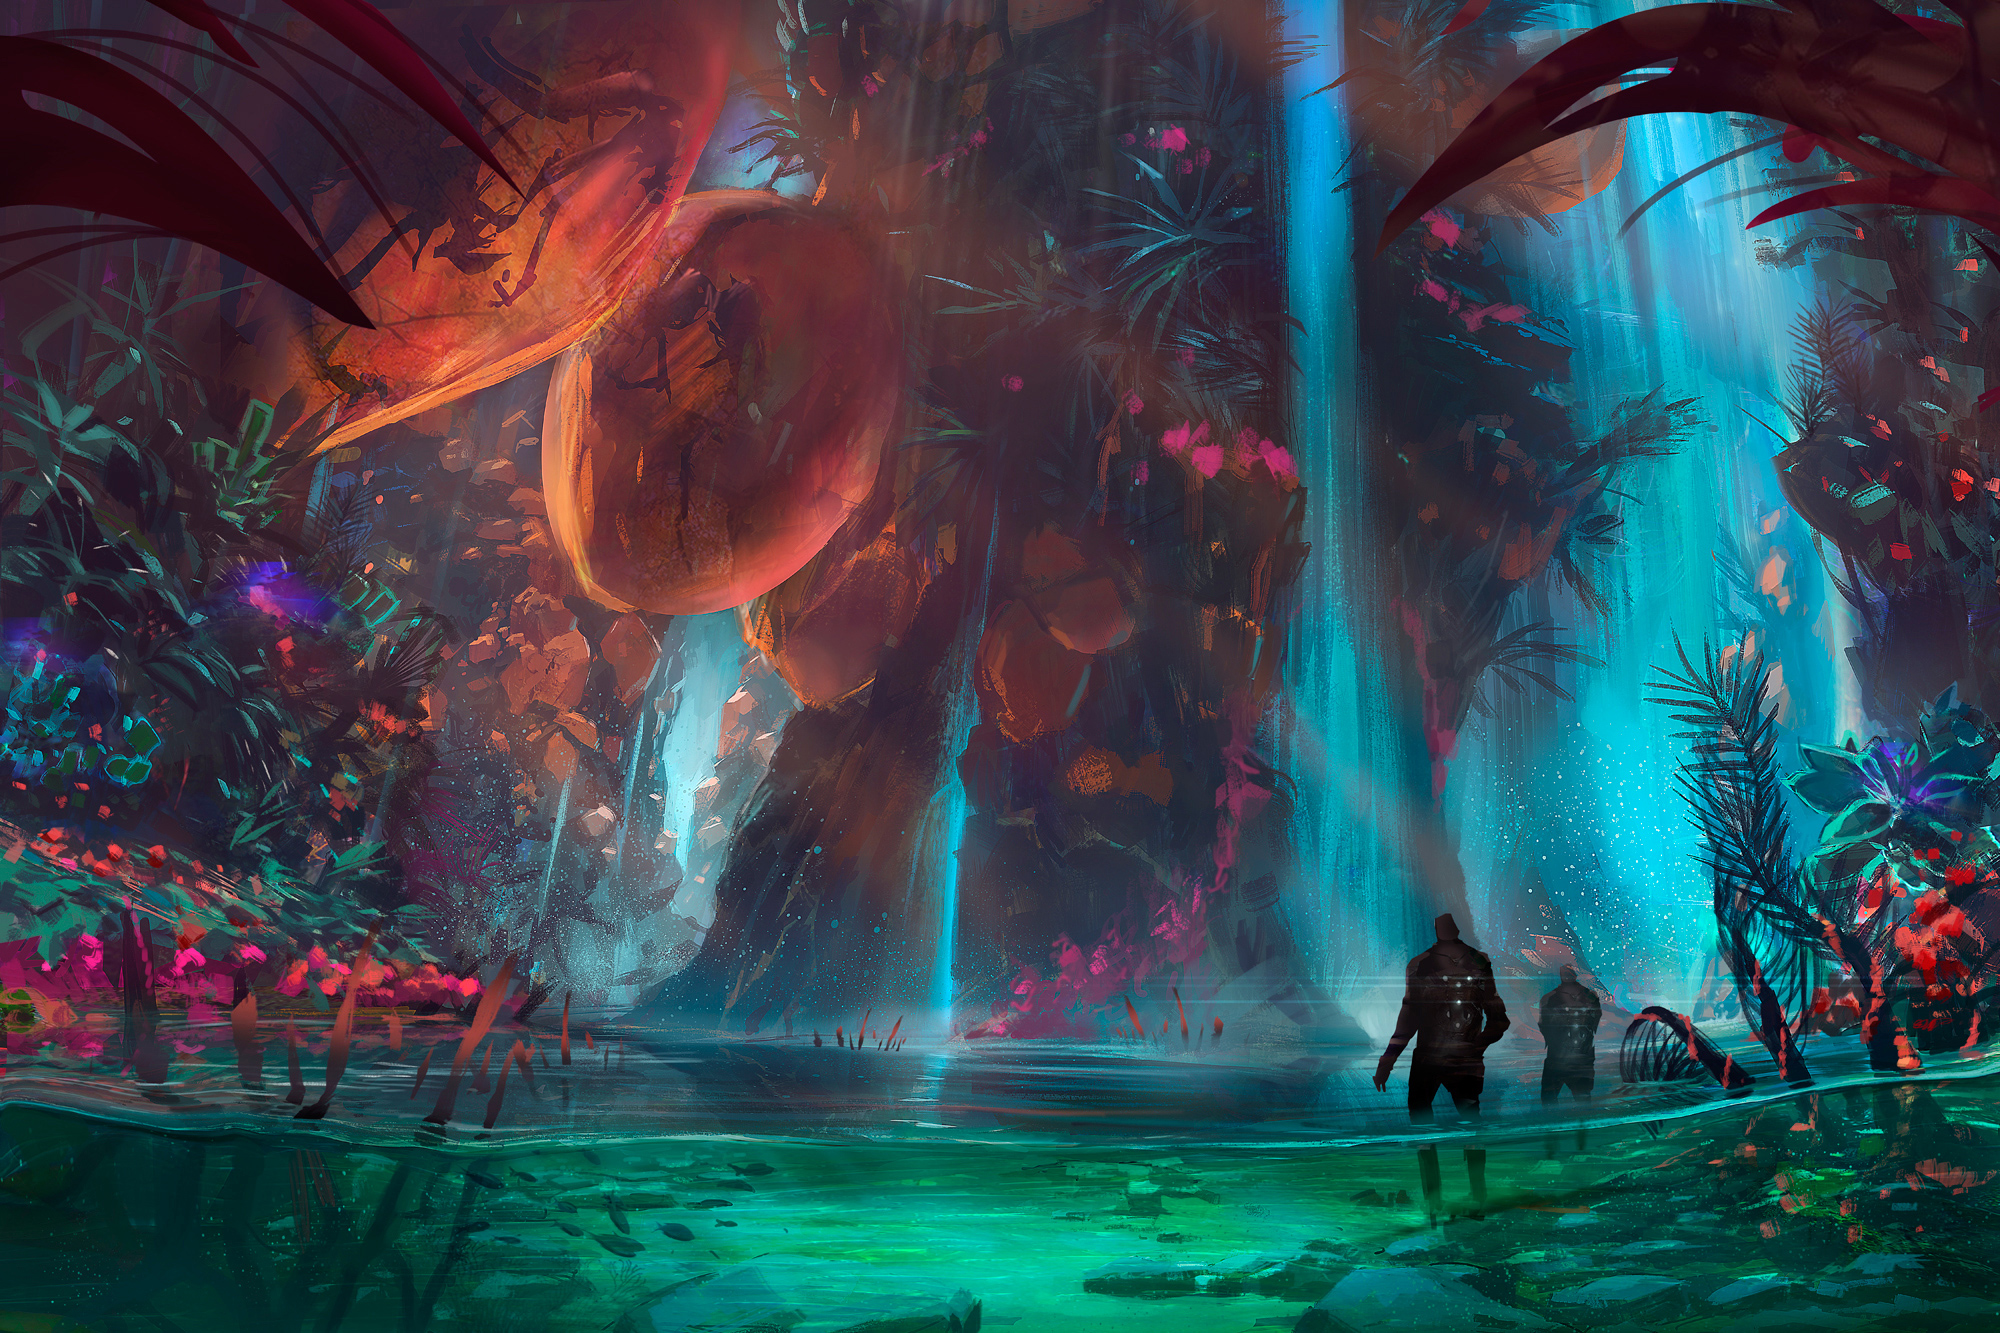 le_cave_unseen_by_medders-d4cydtq-web